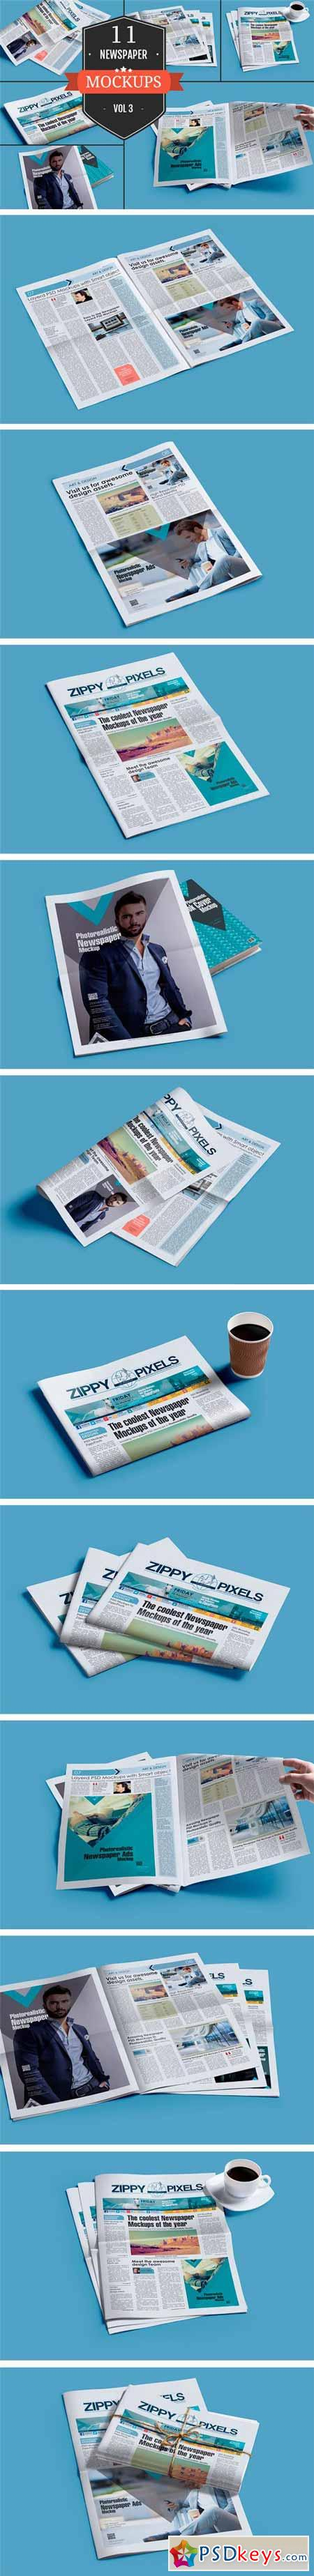 Newspaper Mockup PSDs Vol. 3 351779